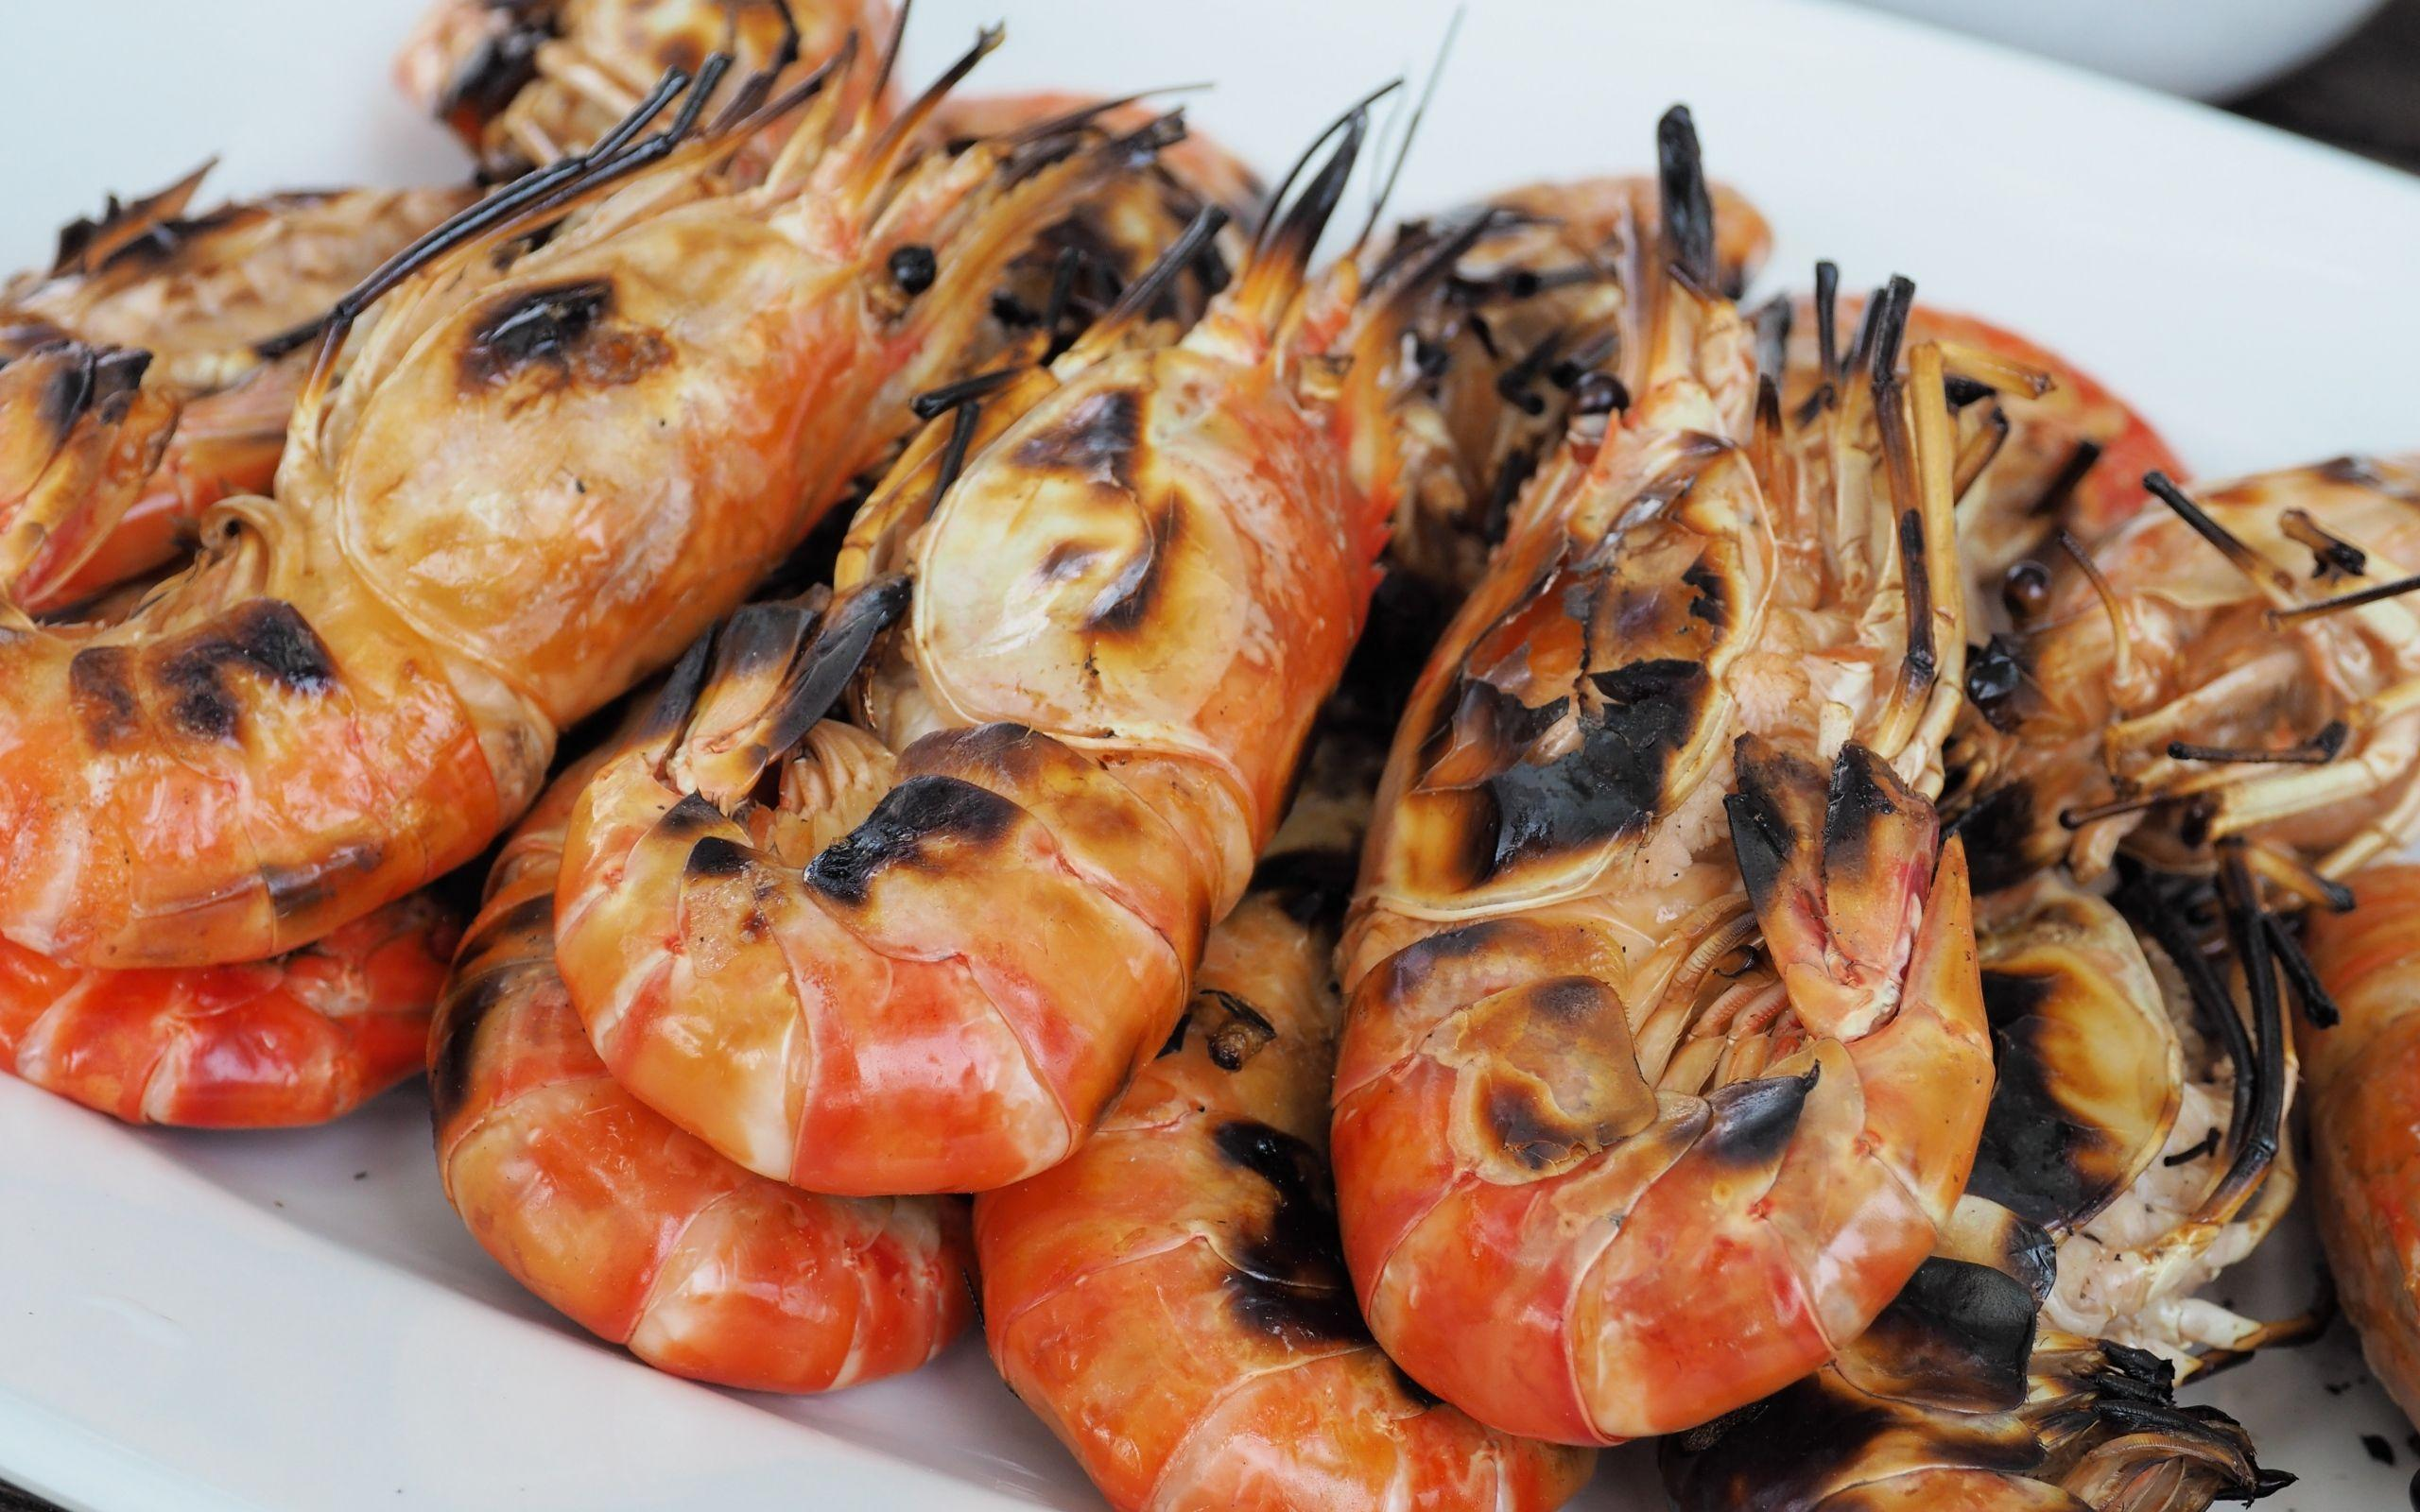 Seafood Shrimp Wallpaper Background 60485 2560x1600 px ...